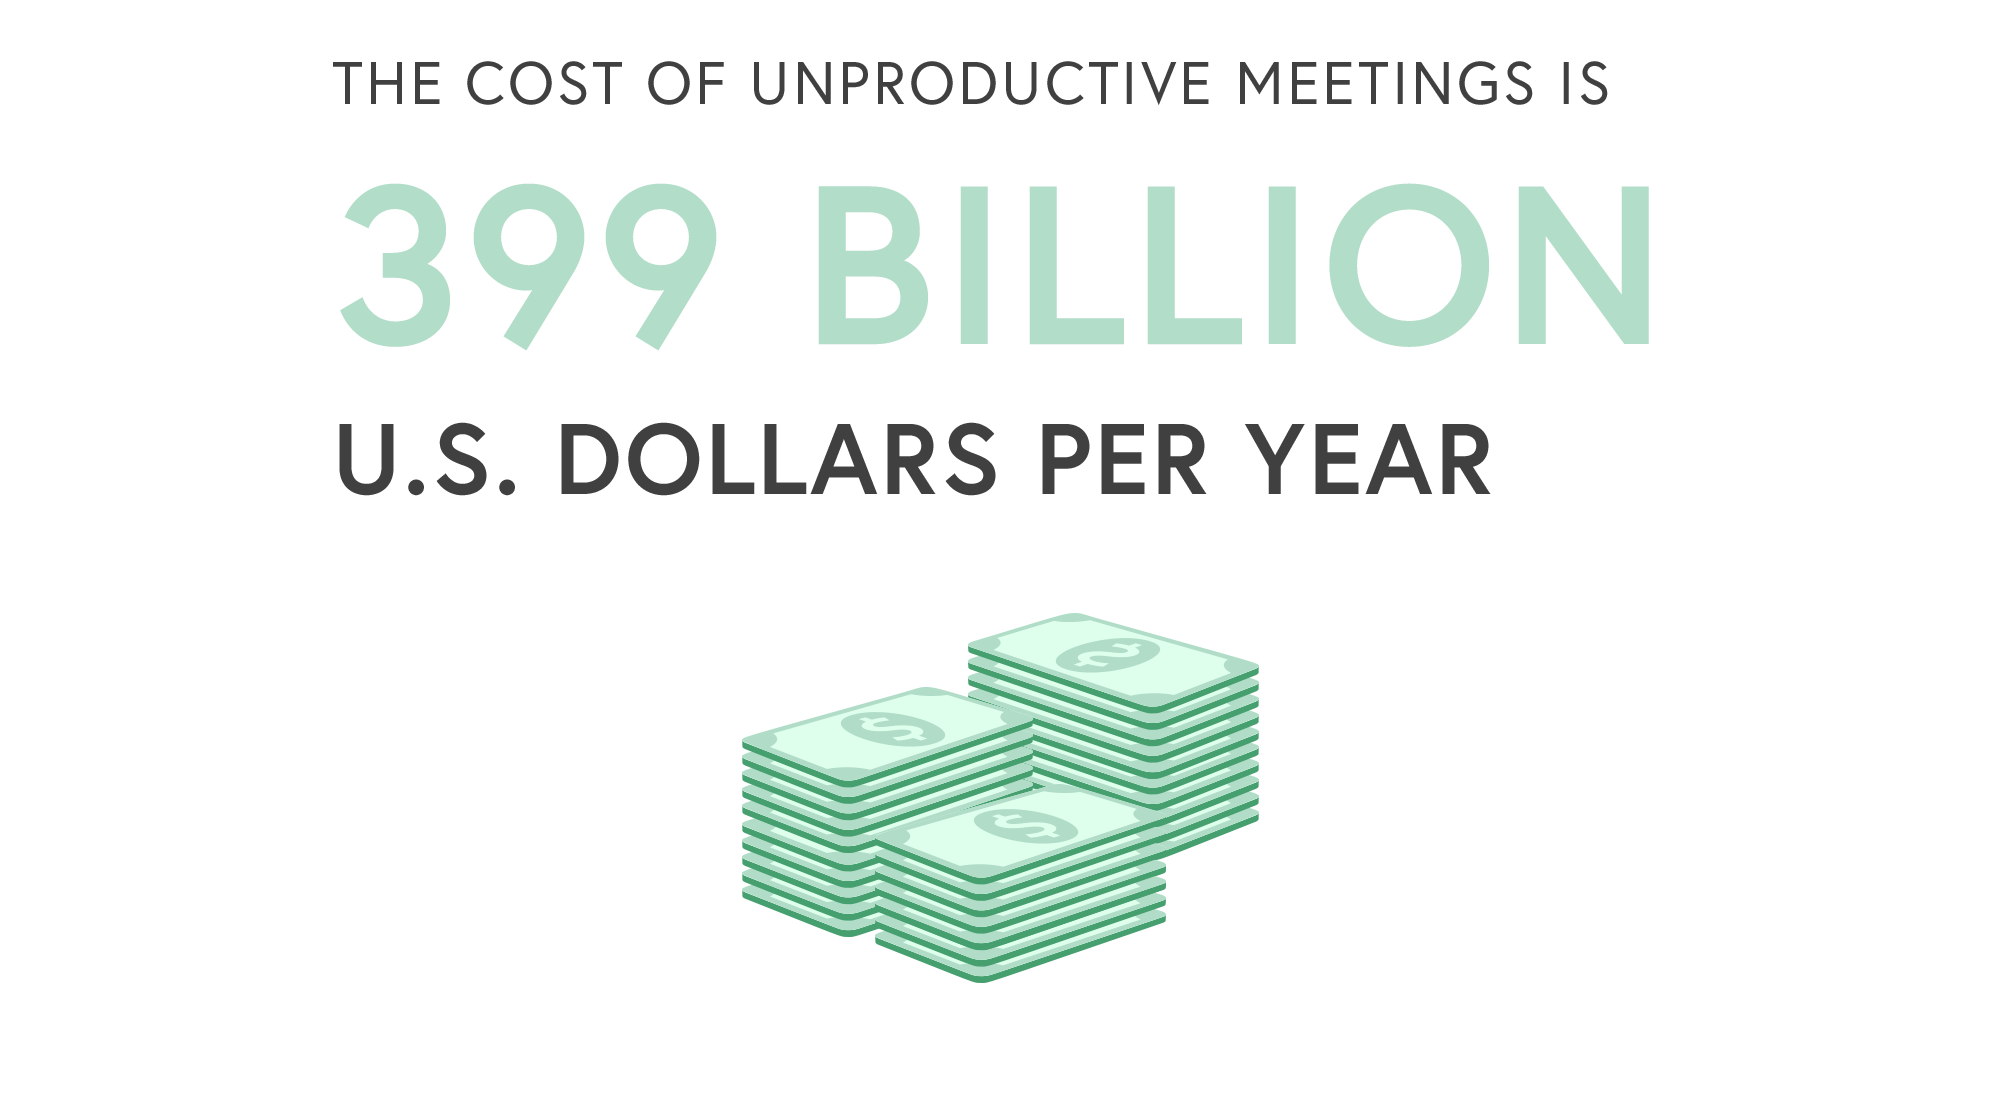 Unproductive meetings cost 399 billion dollars per year